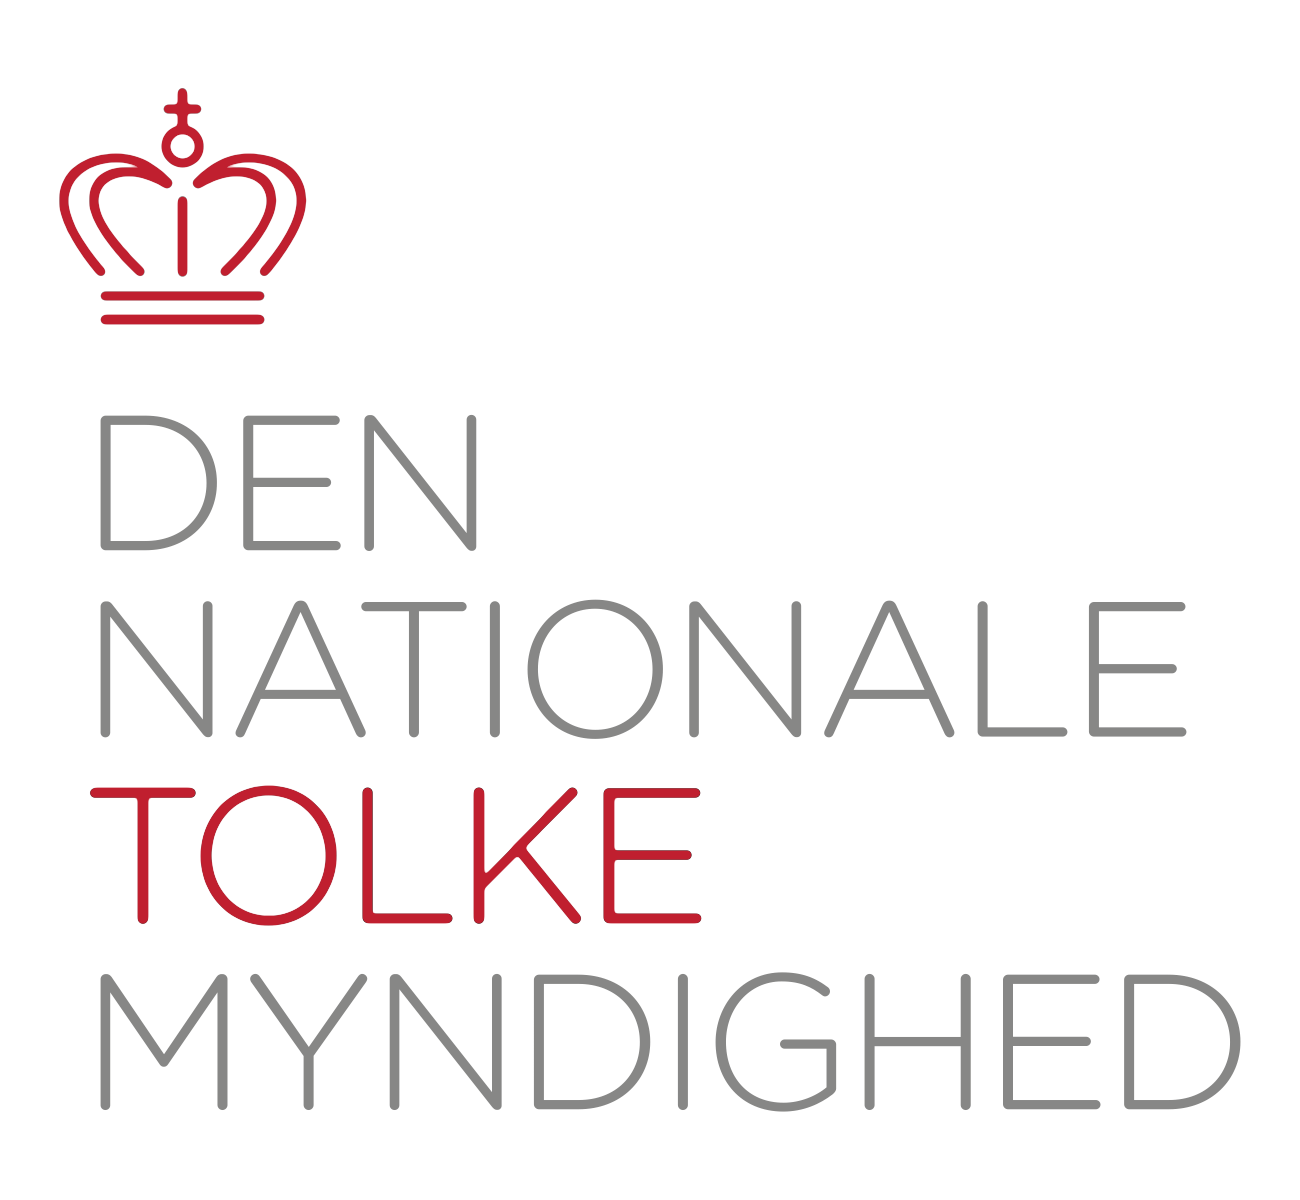 Den Nationale Tolke Myndighed